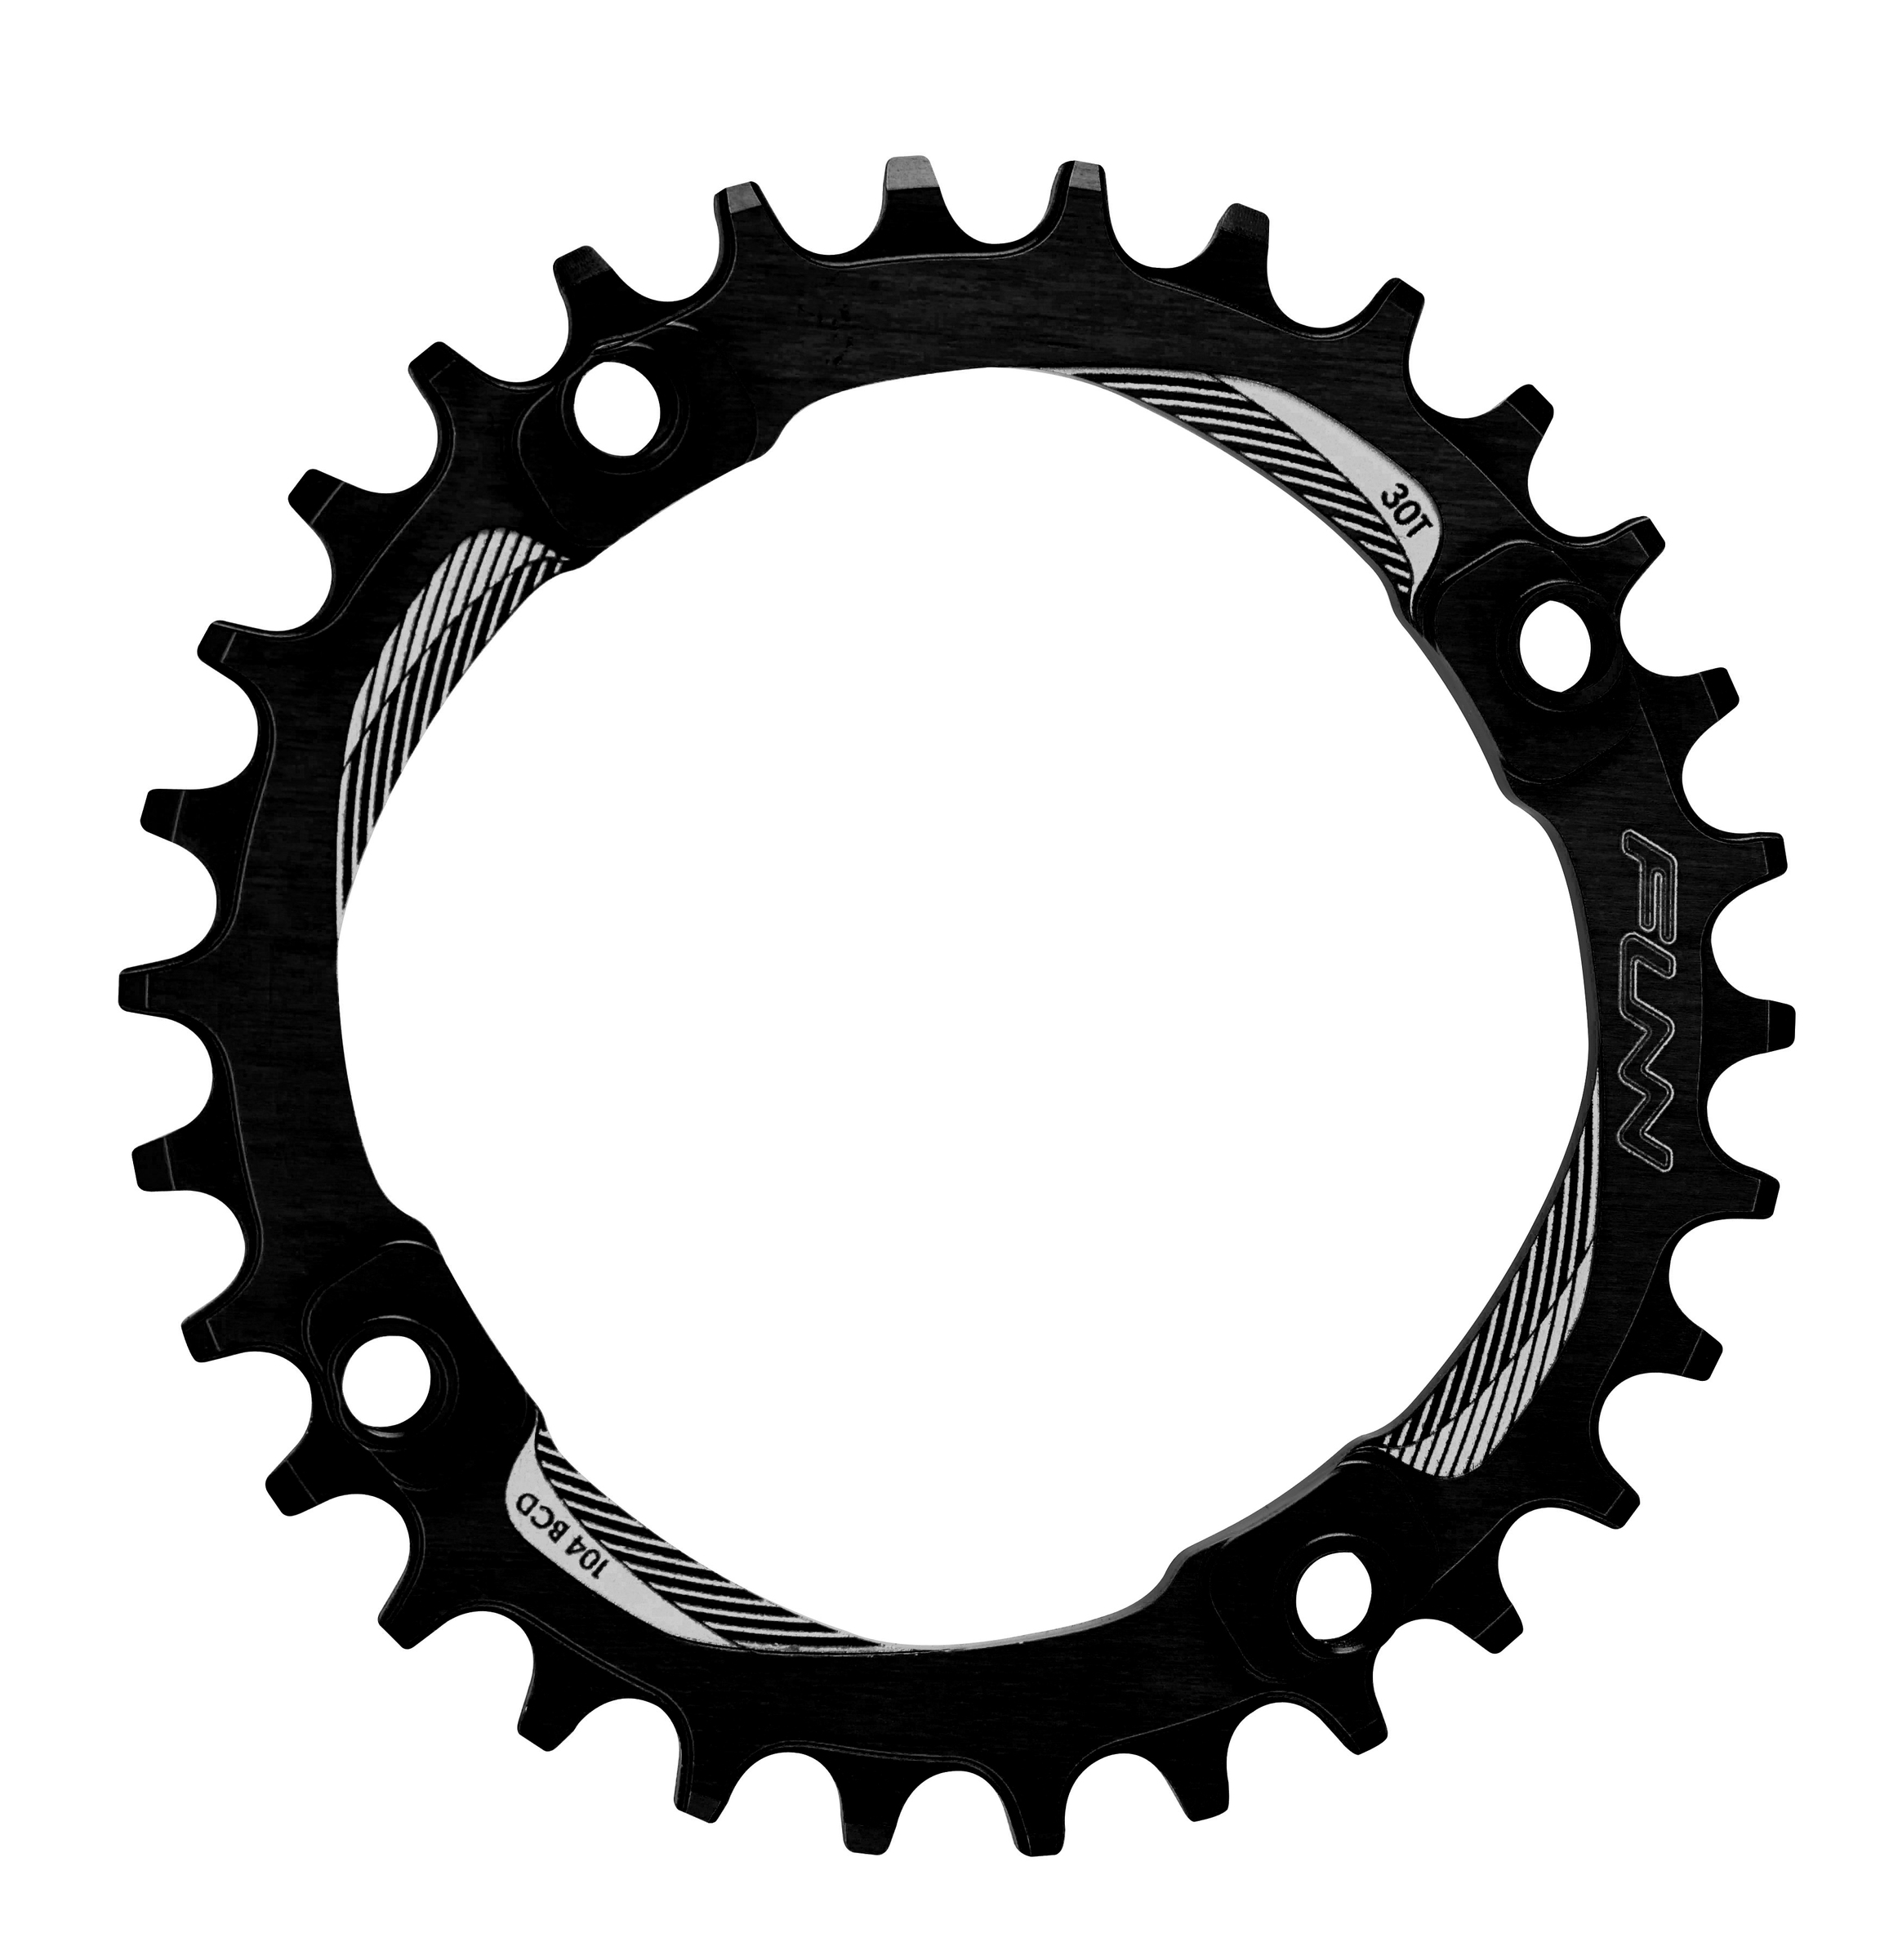 15-SOLO-CHAINRING-BLACK.jpg